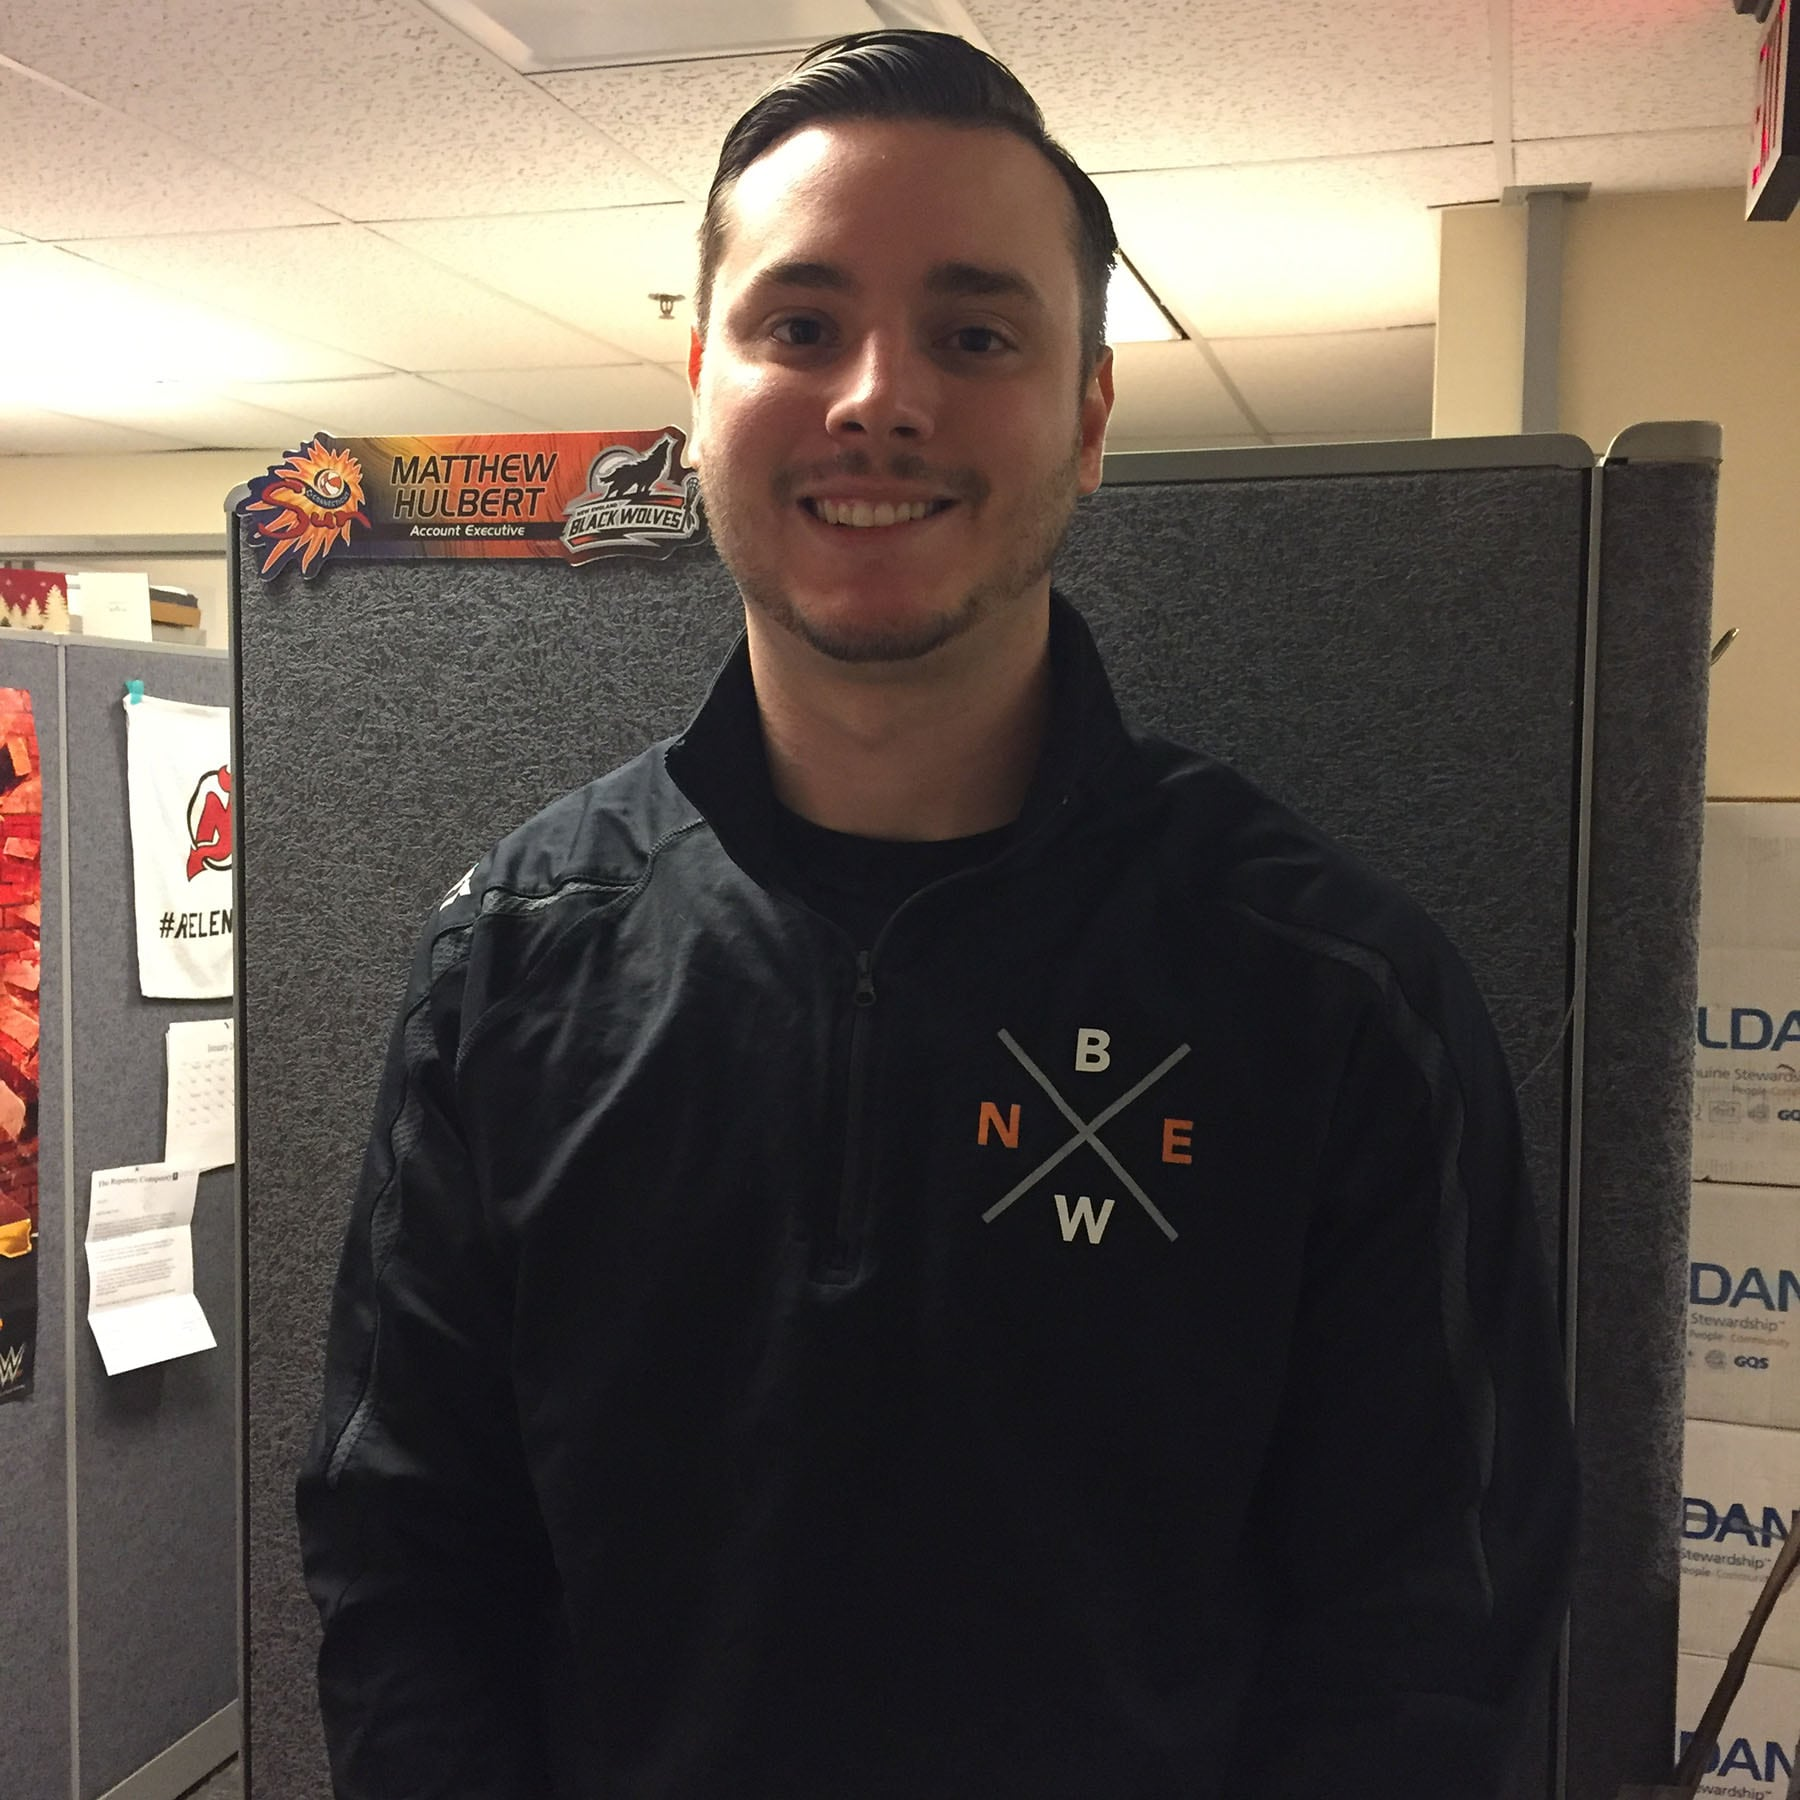 Matt Hulbert - Account Executive